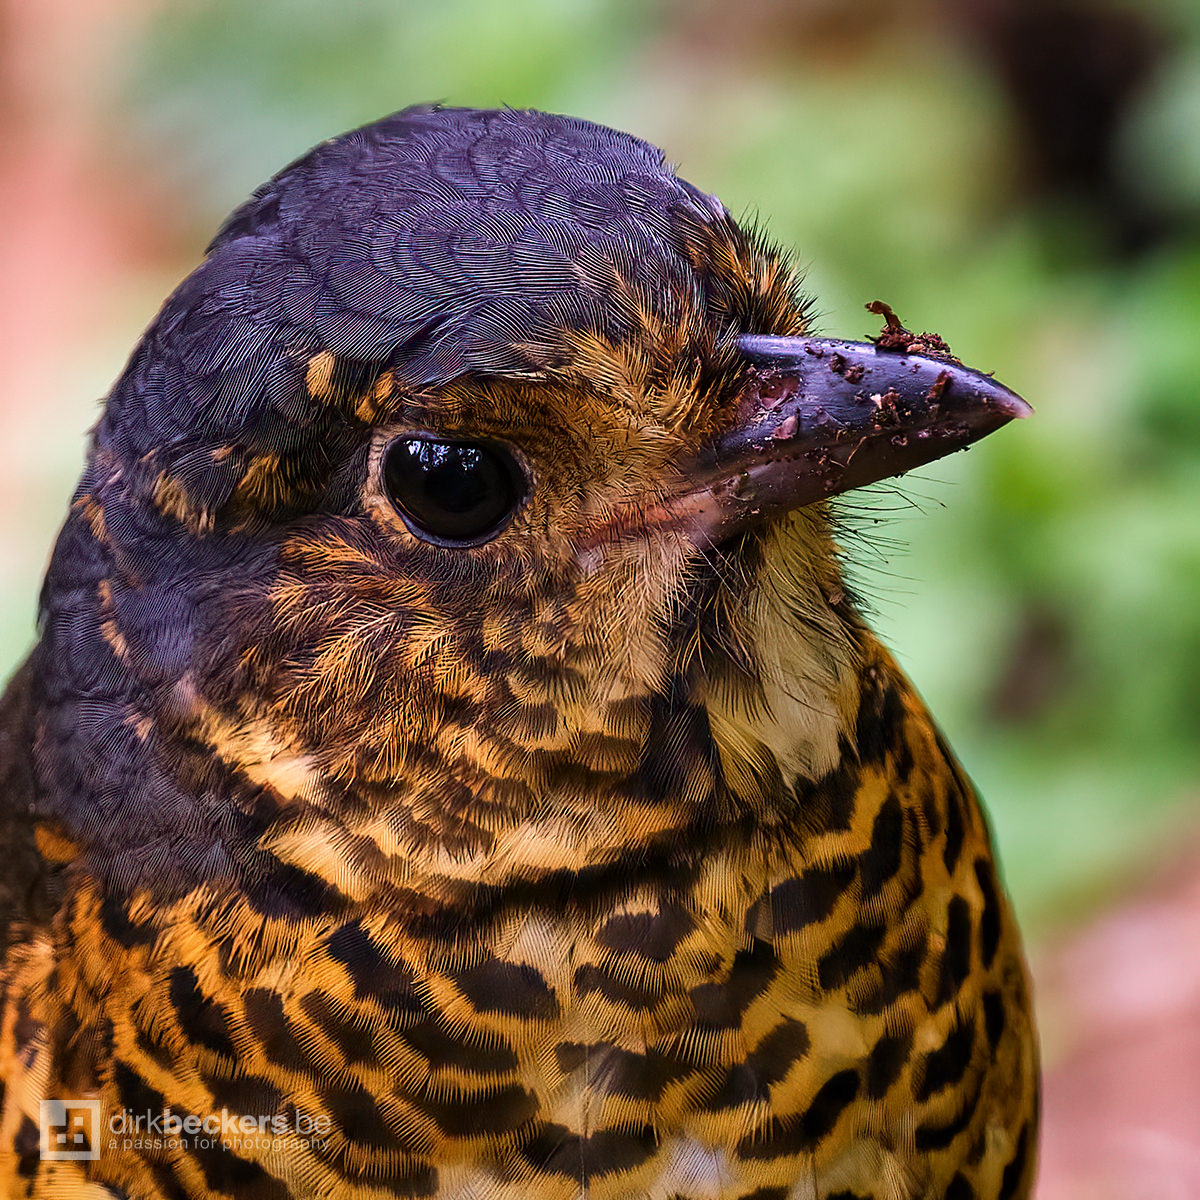 Close-up of an Undulated Antpitta at Río Blanco Reserva Natural in Caldas, Colombia.